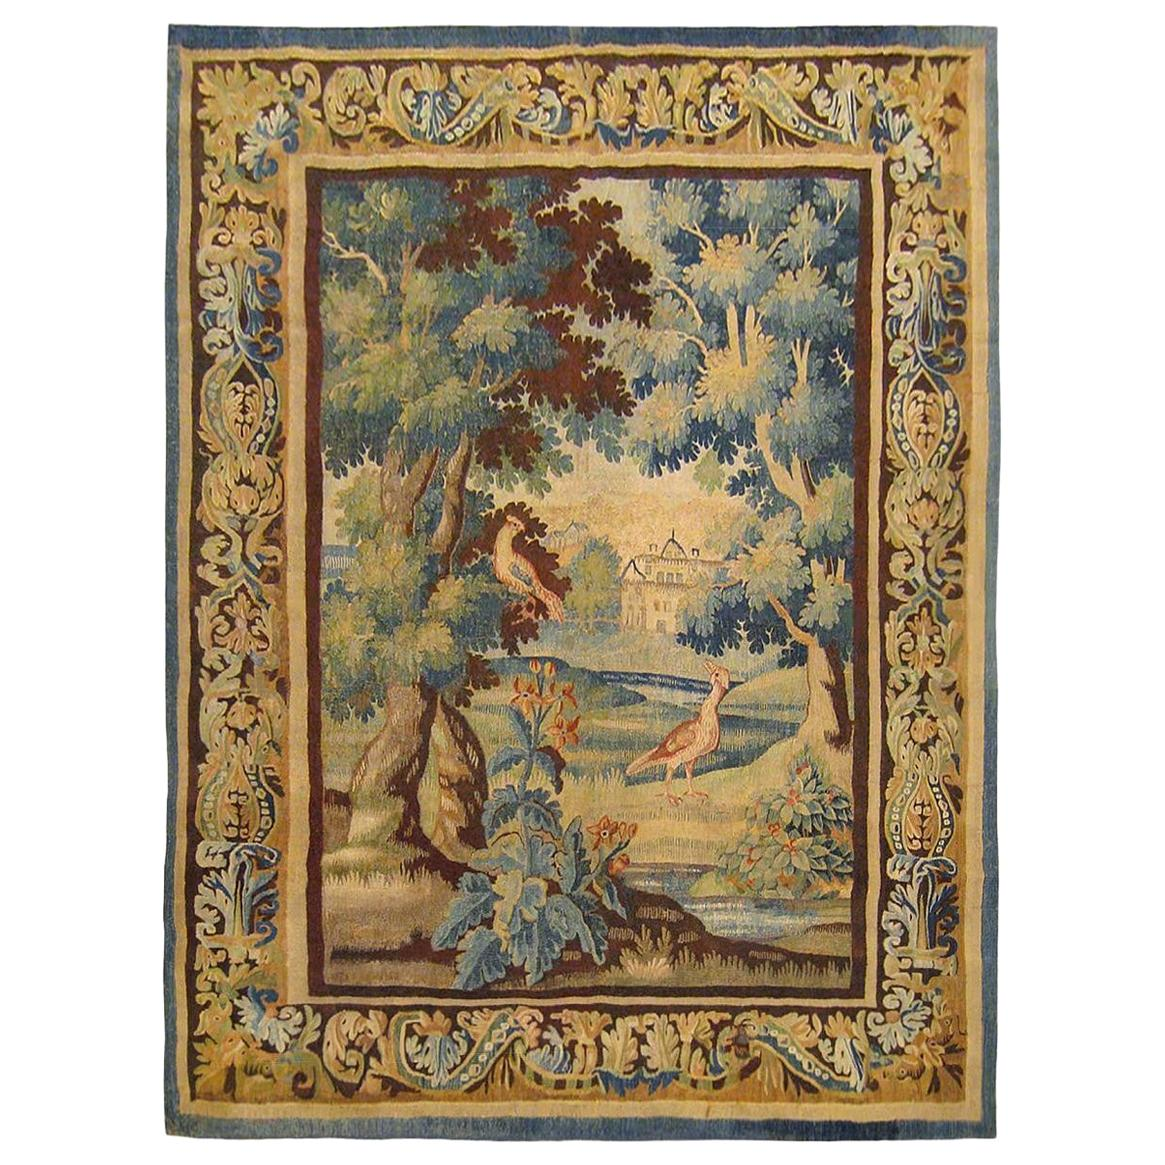 Flemish Verdure Landscape Tapestry, with Exotic Birds in a Lush Setting